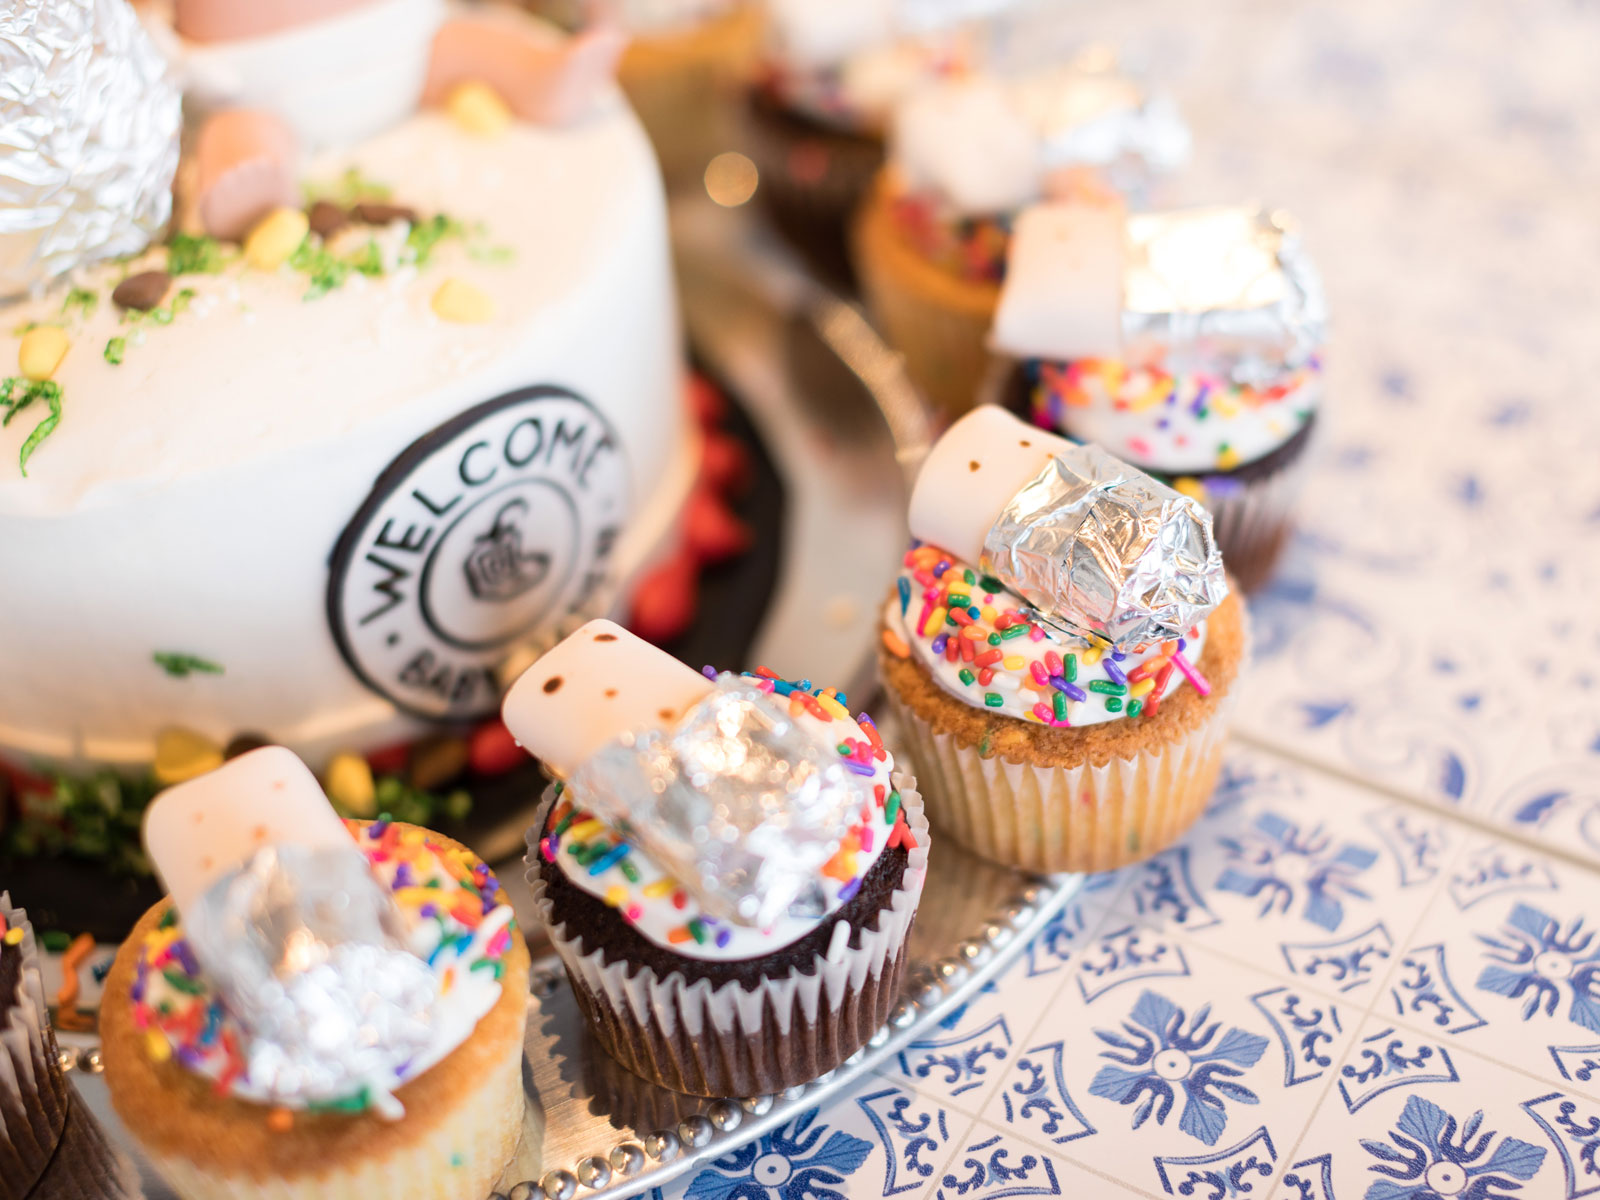 chipotle-baby-shower-cupcakes-FT-BLOG0518.jpg